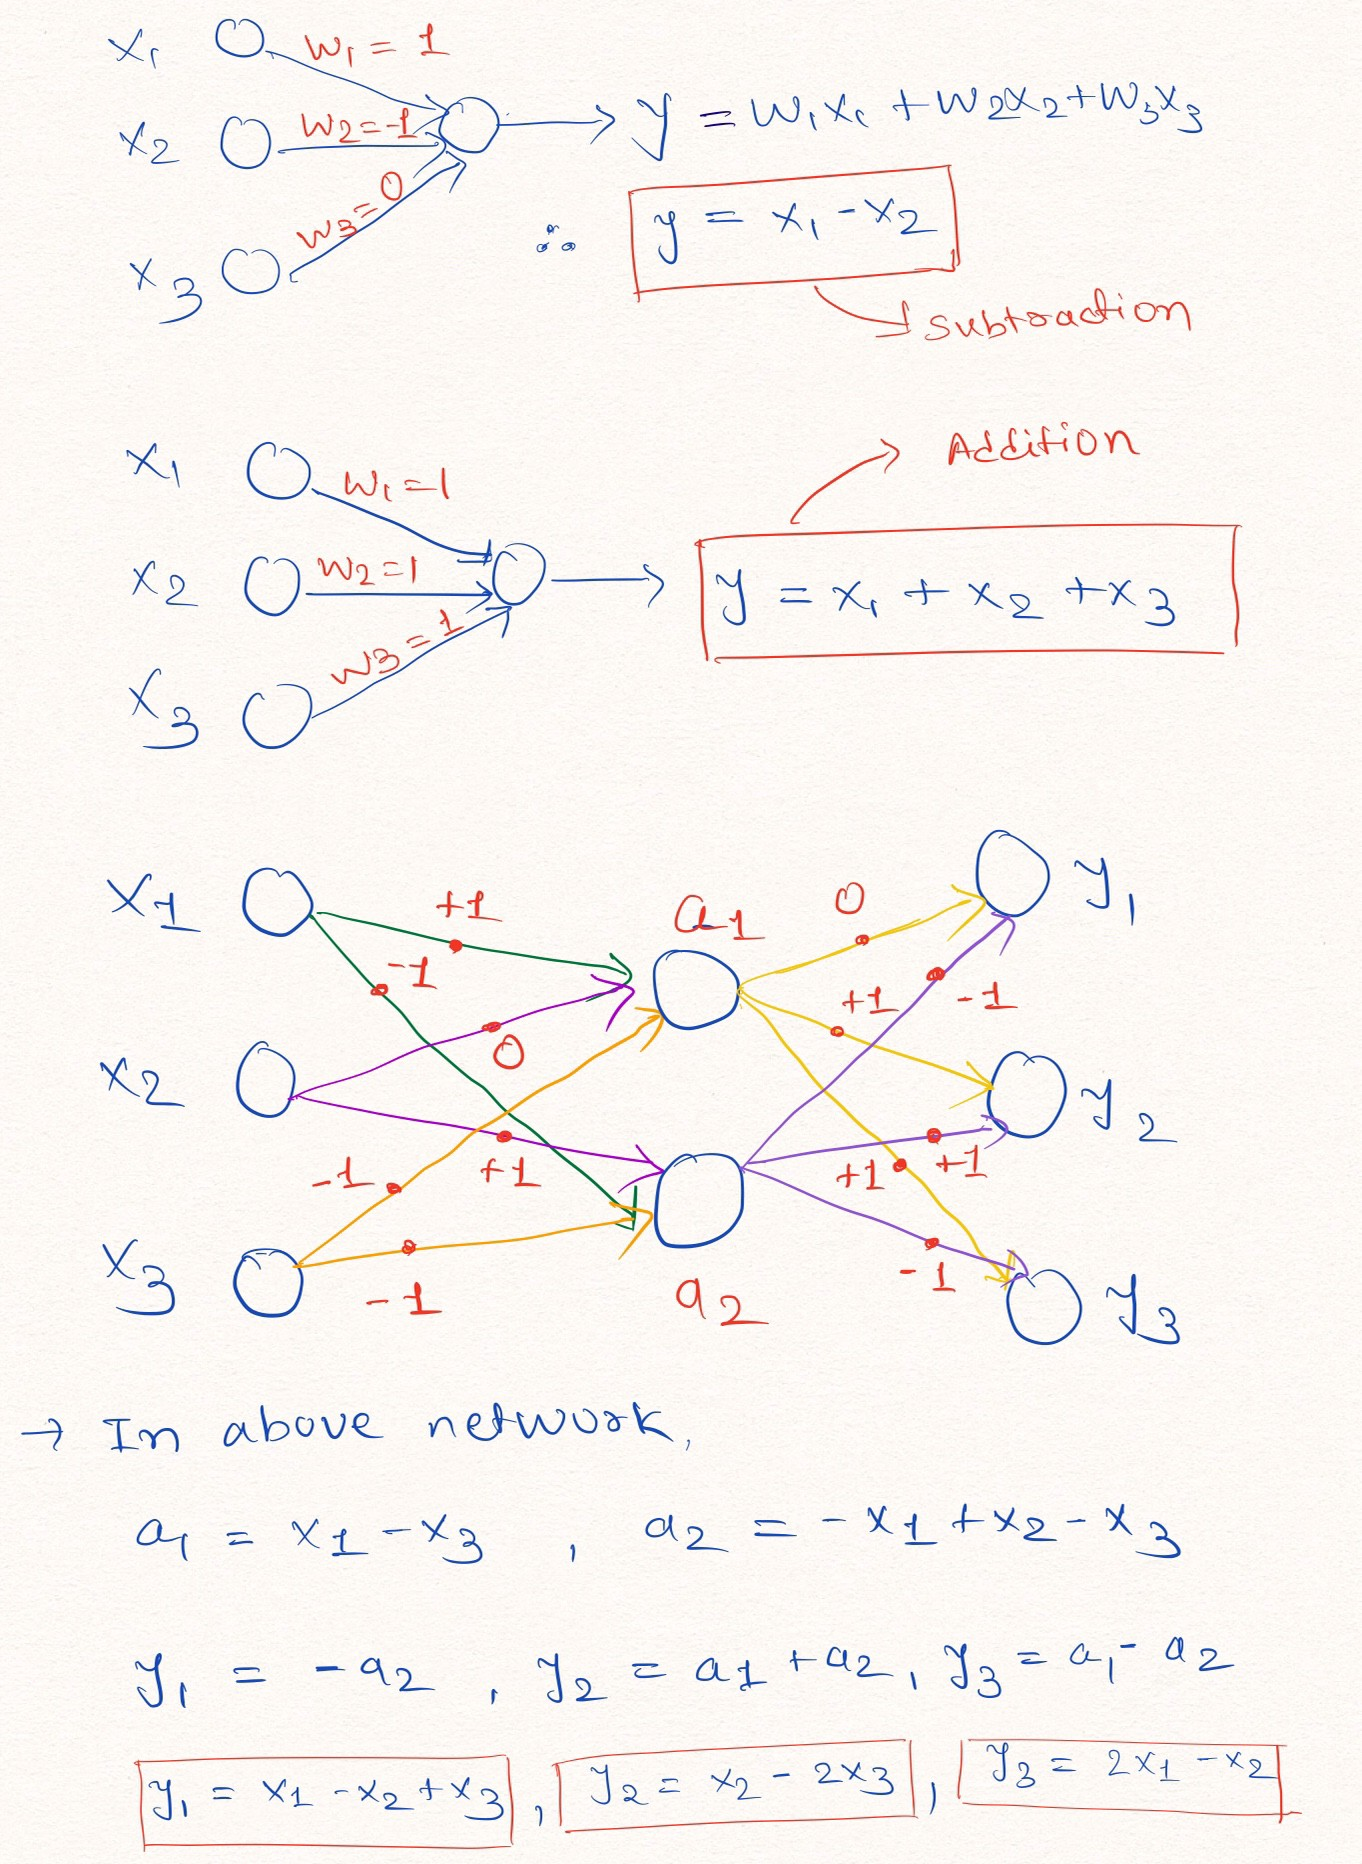 Simple guide to Neural Arithmetic Logic Units (NALU): Explanation, Intuition and Code